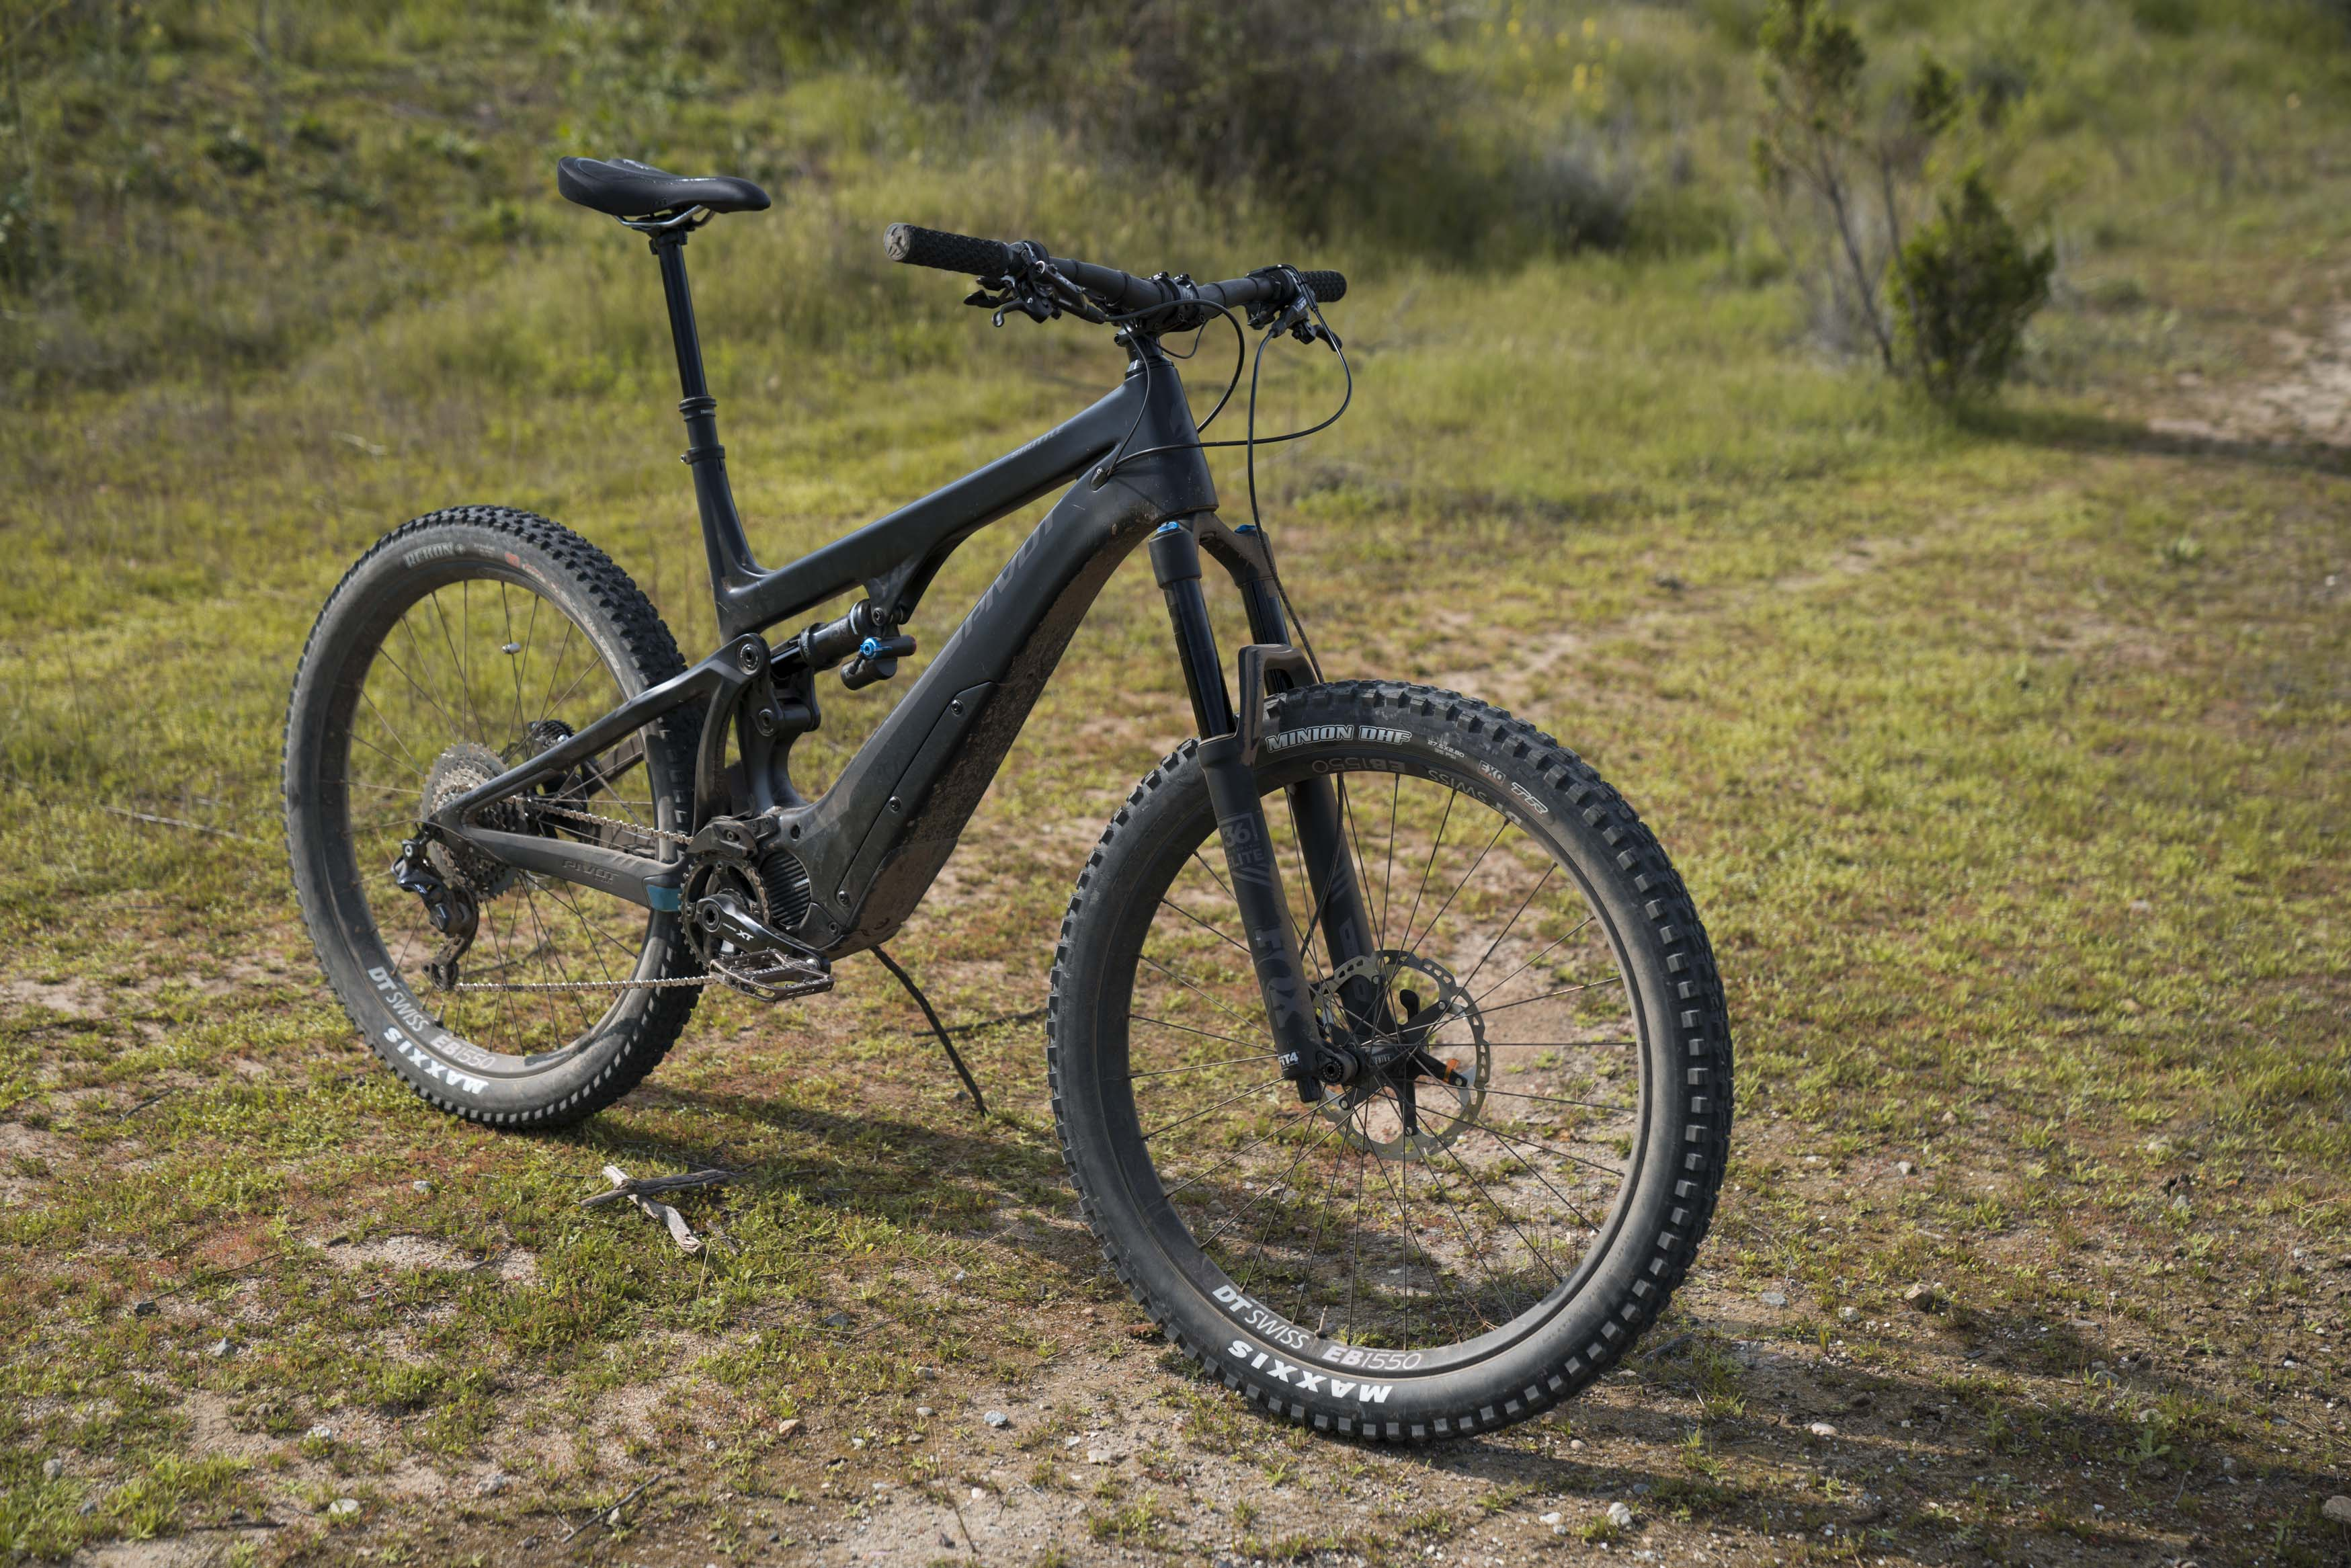 989aec3e992 First Look: Pivot Shuttle. We take out one of the lightest e-bikes ...